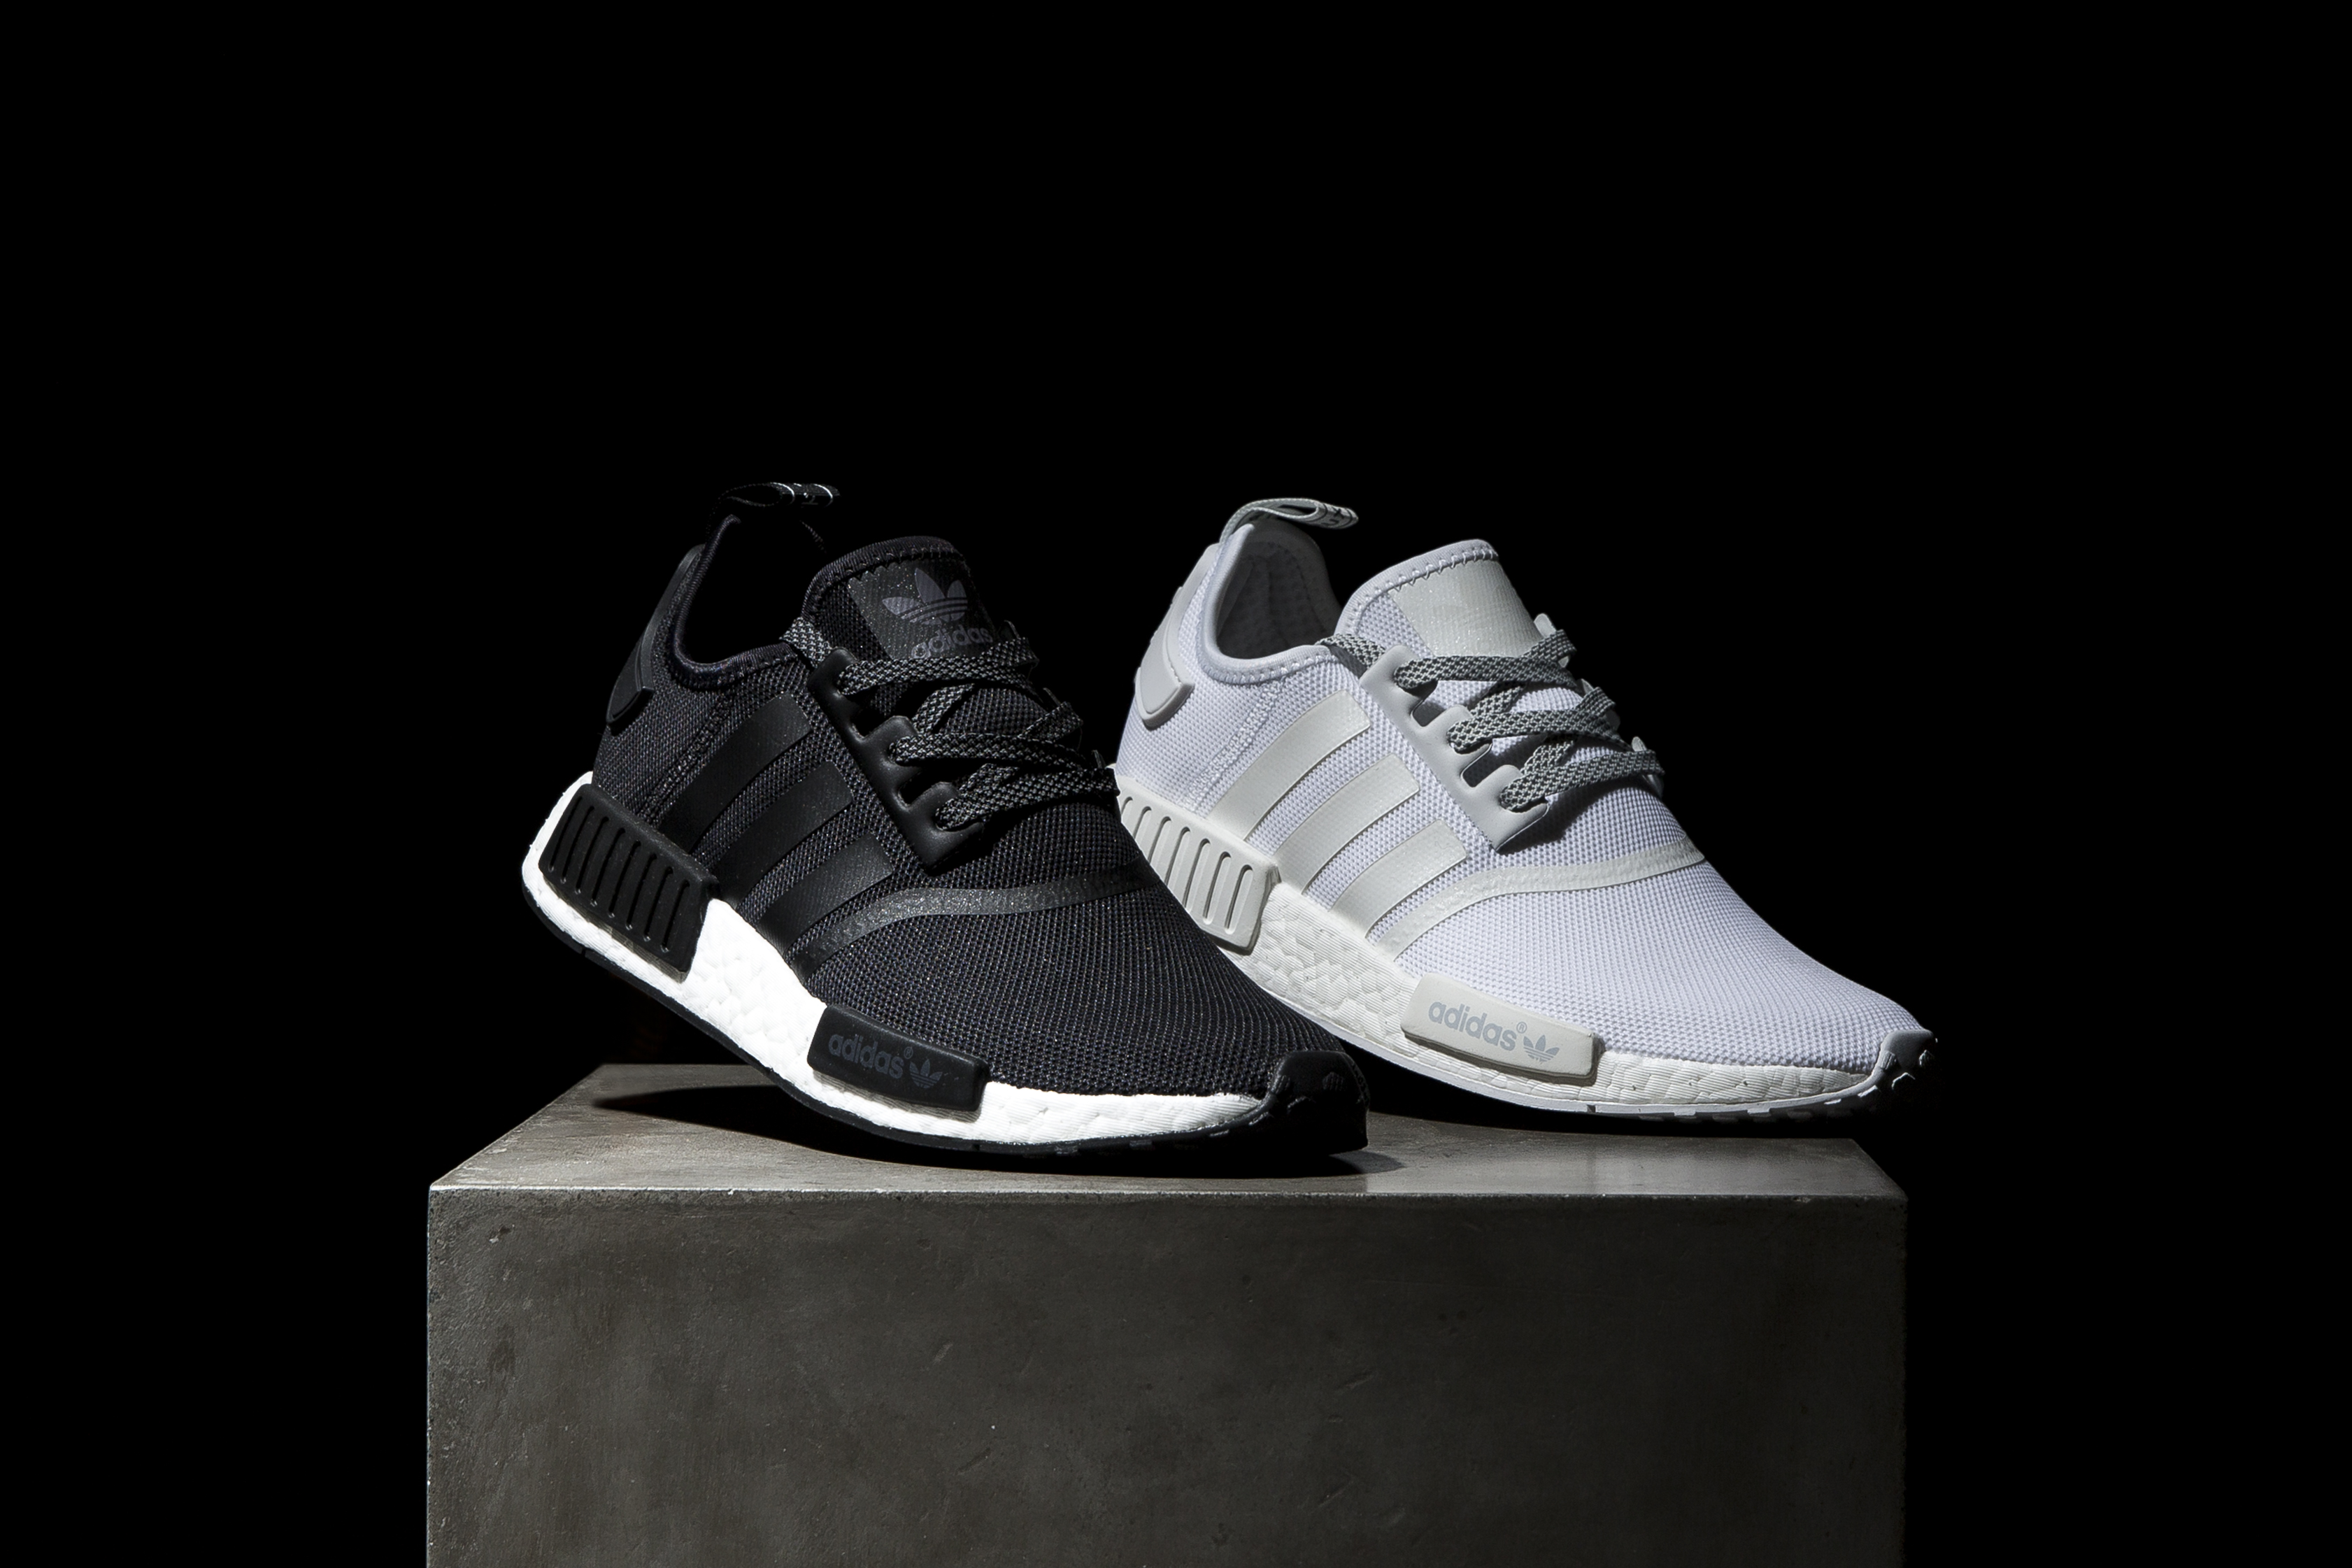 Adidas NMD Runner R1 PK White Black Grey Silver Glitch Camo Pack